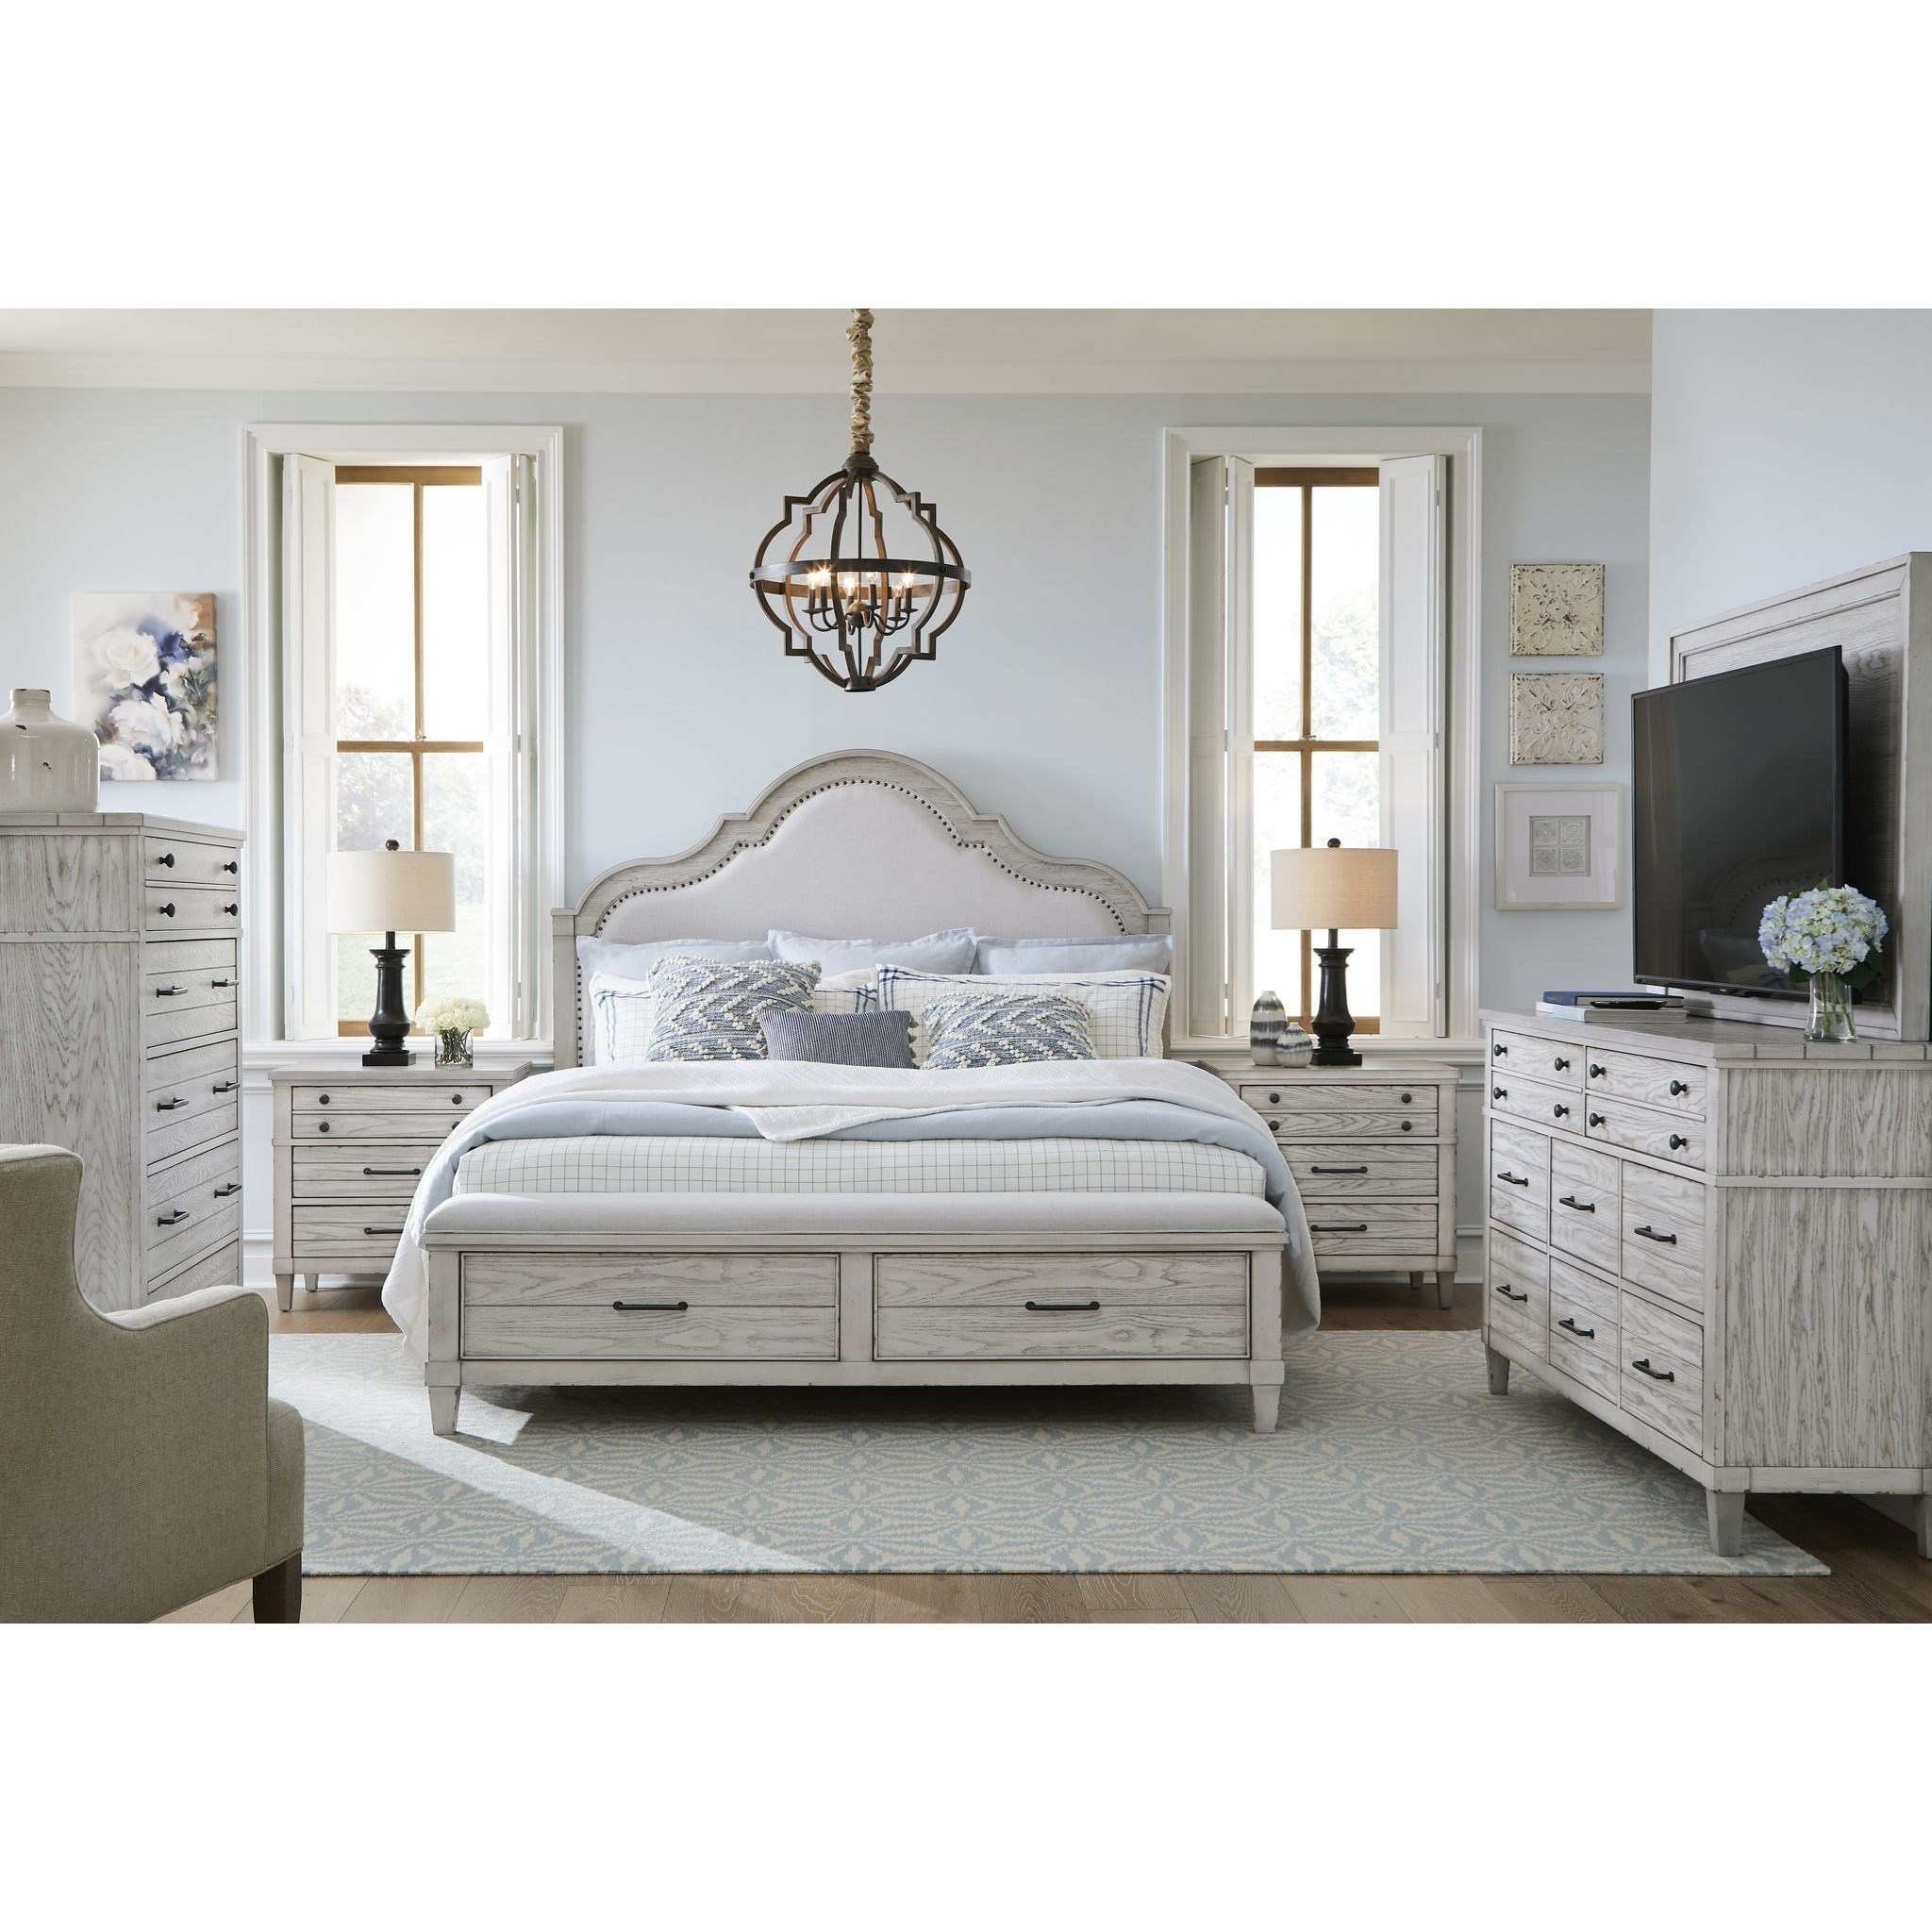 Belhaven King Bedroom Group by Legacy Classic at Stoney Creek Furniture